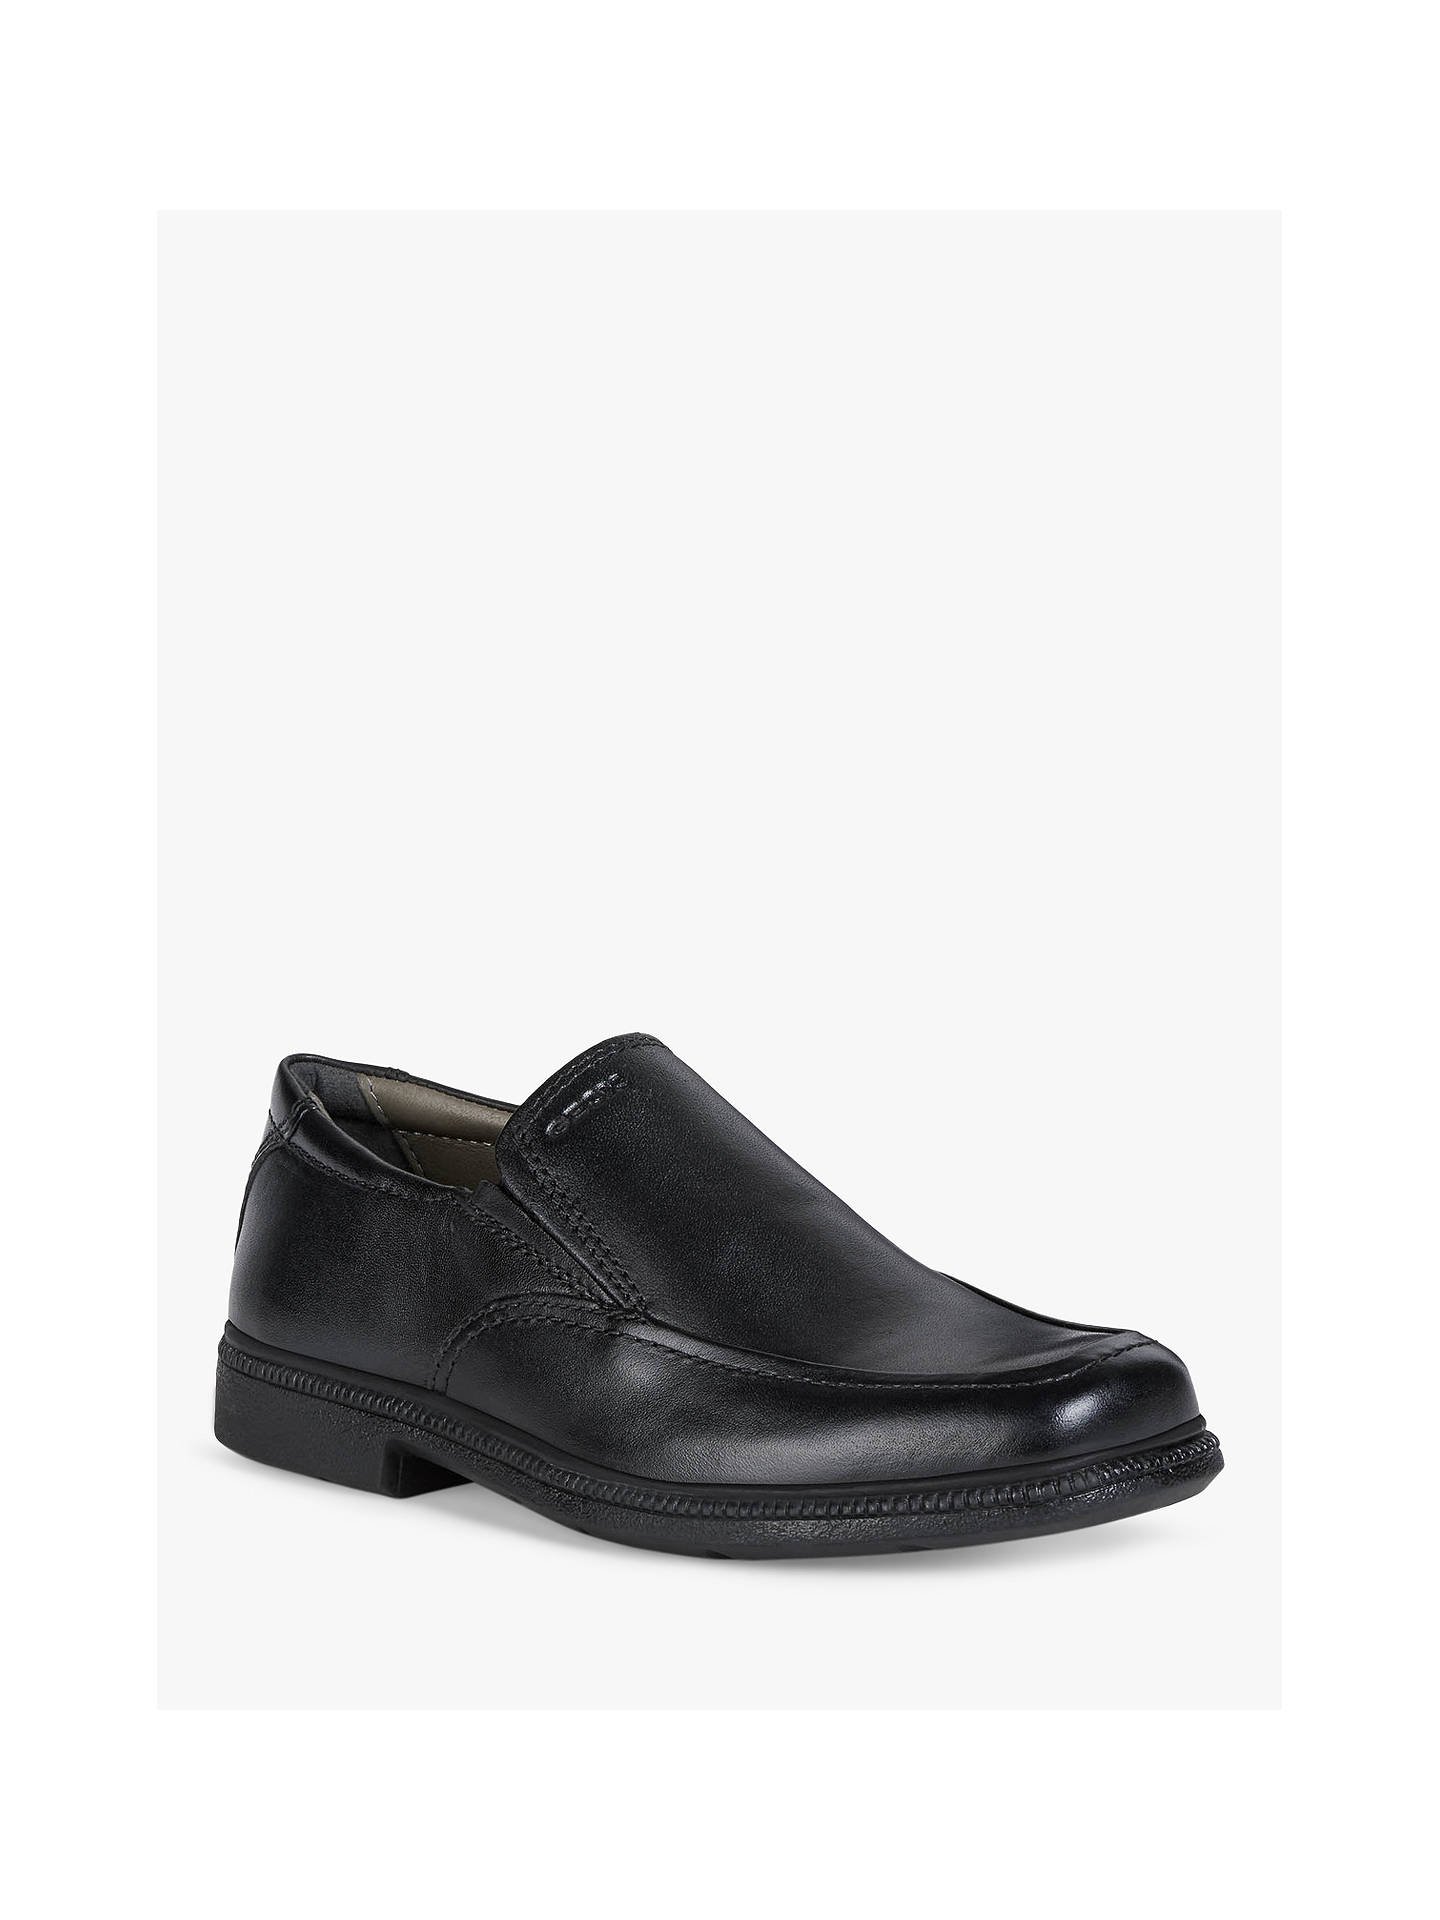 Geox Children's Federico Boots, Black Leather at John Lewis